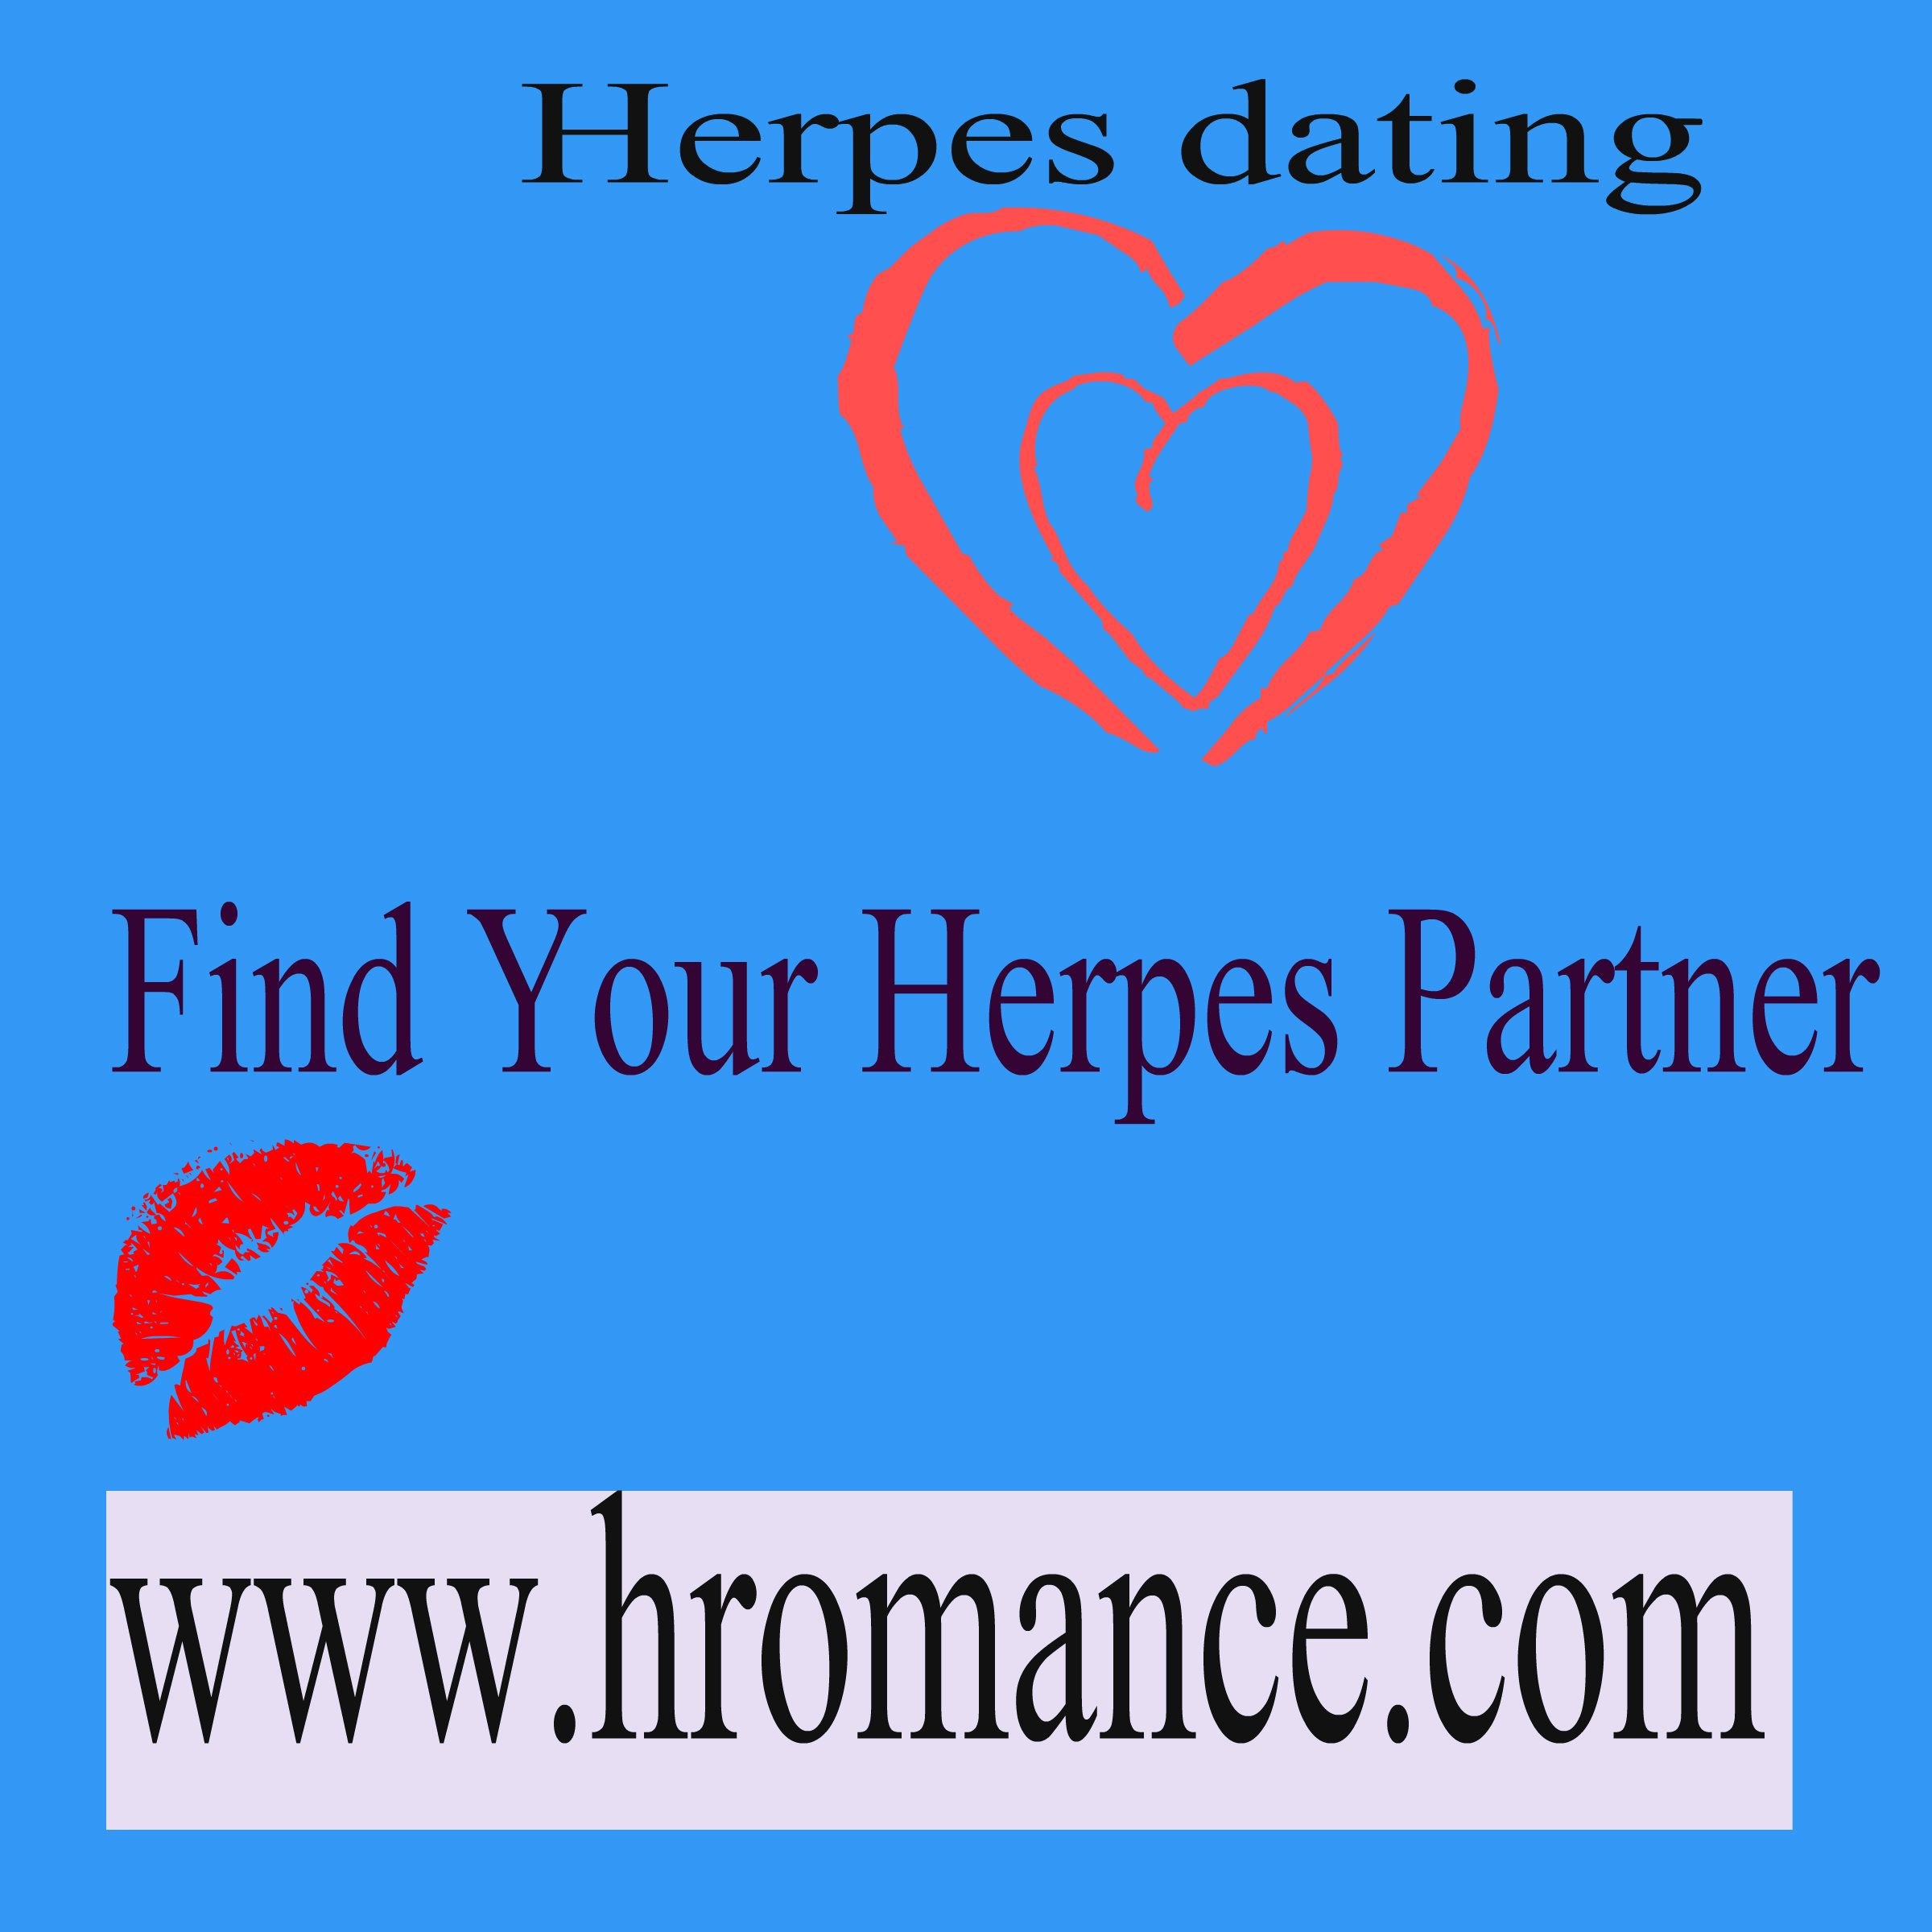 Herpes dating sites privacy